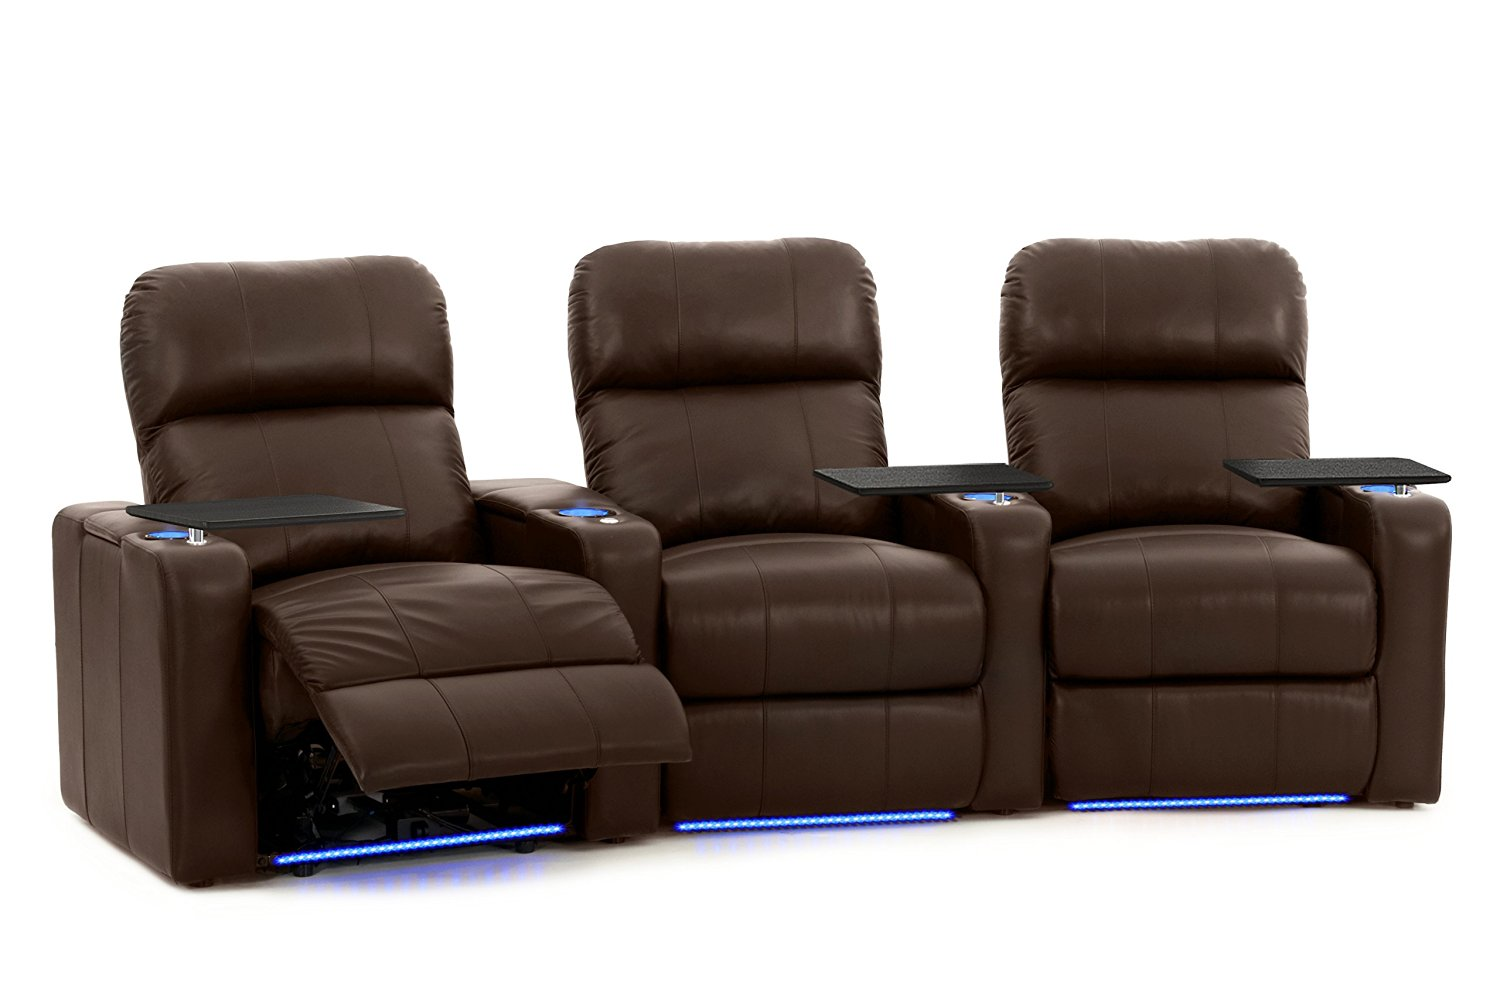 Turbo XL700 Home Theater Seating - Octane Seating - Brown Leather - Power Recline - Lighted Cup Holders & Baserail - Memory Foam